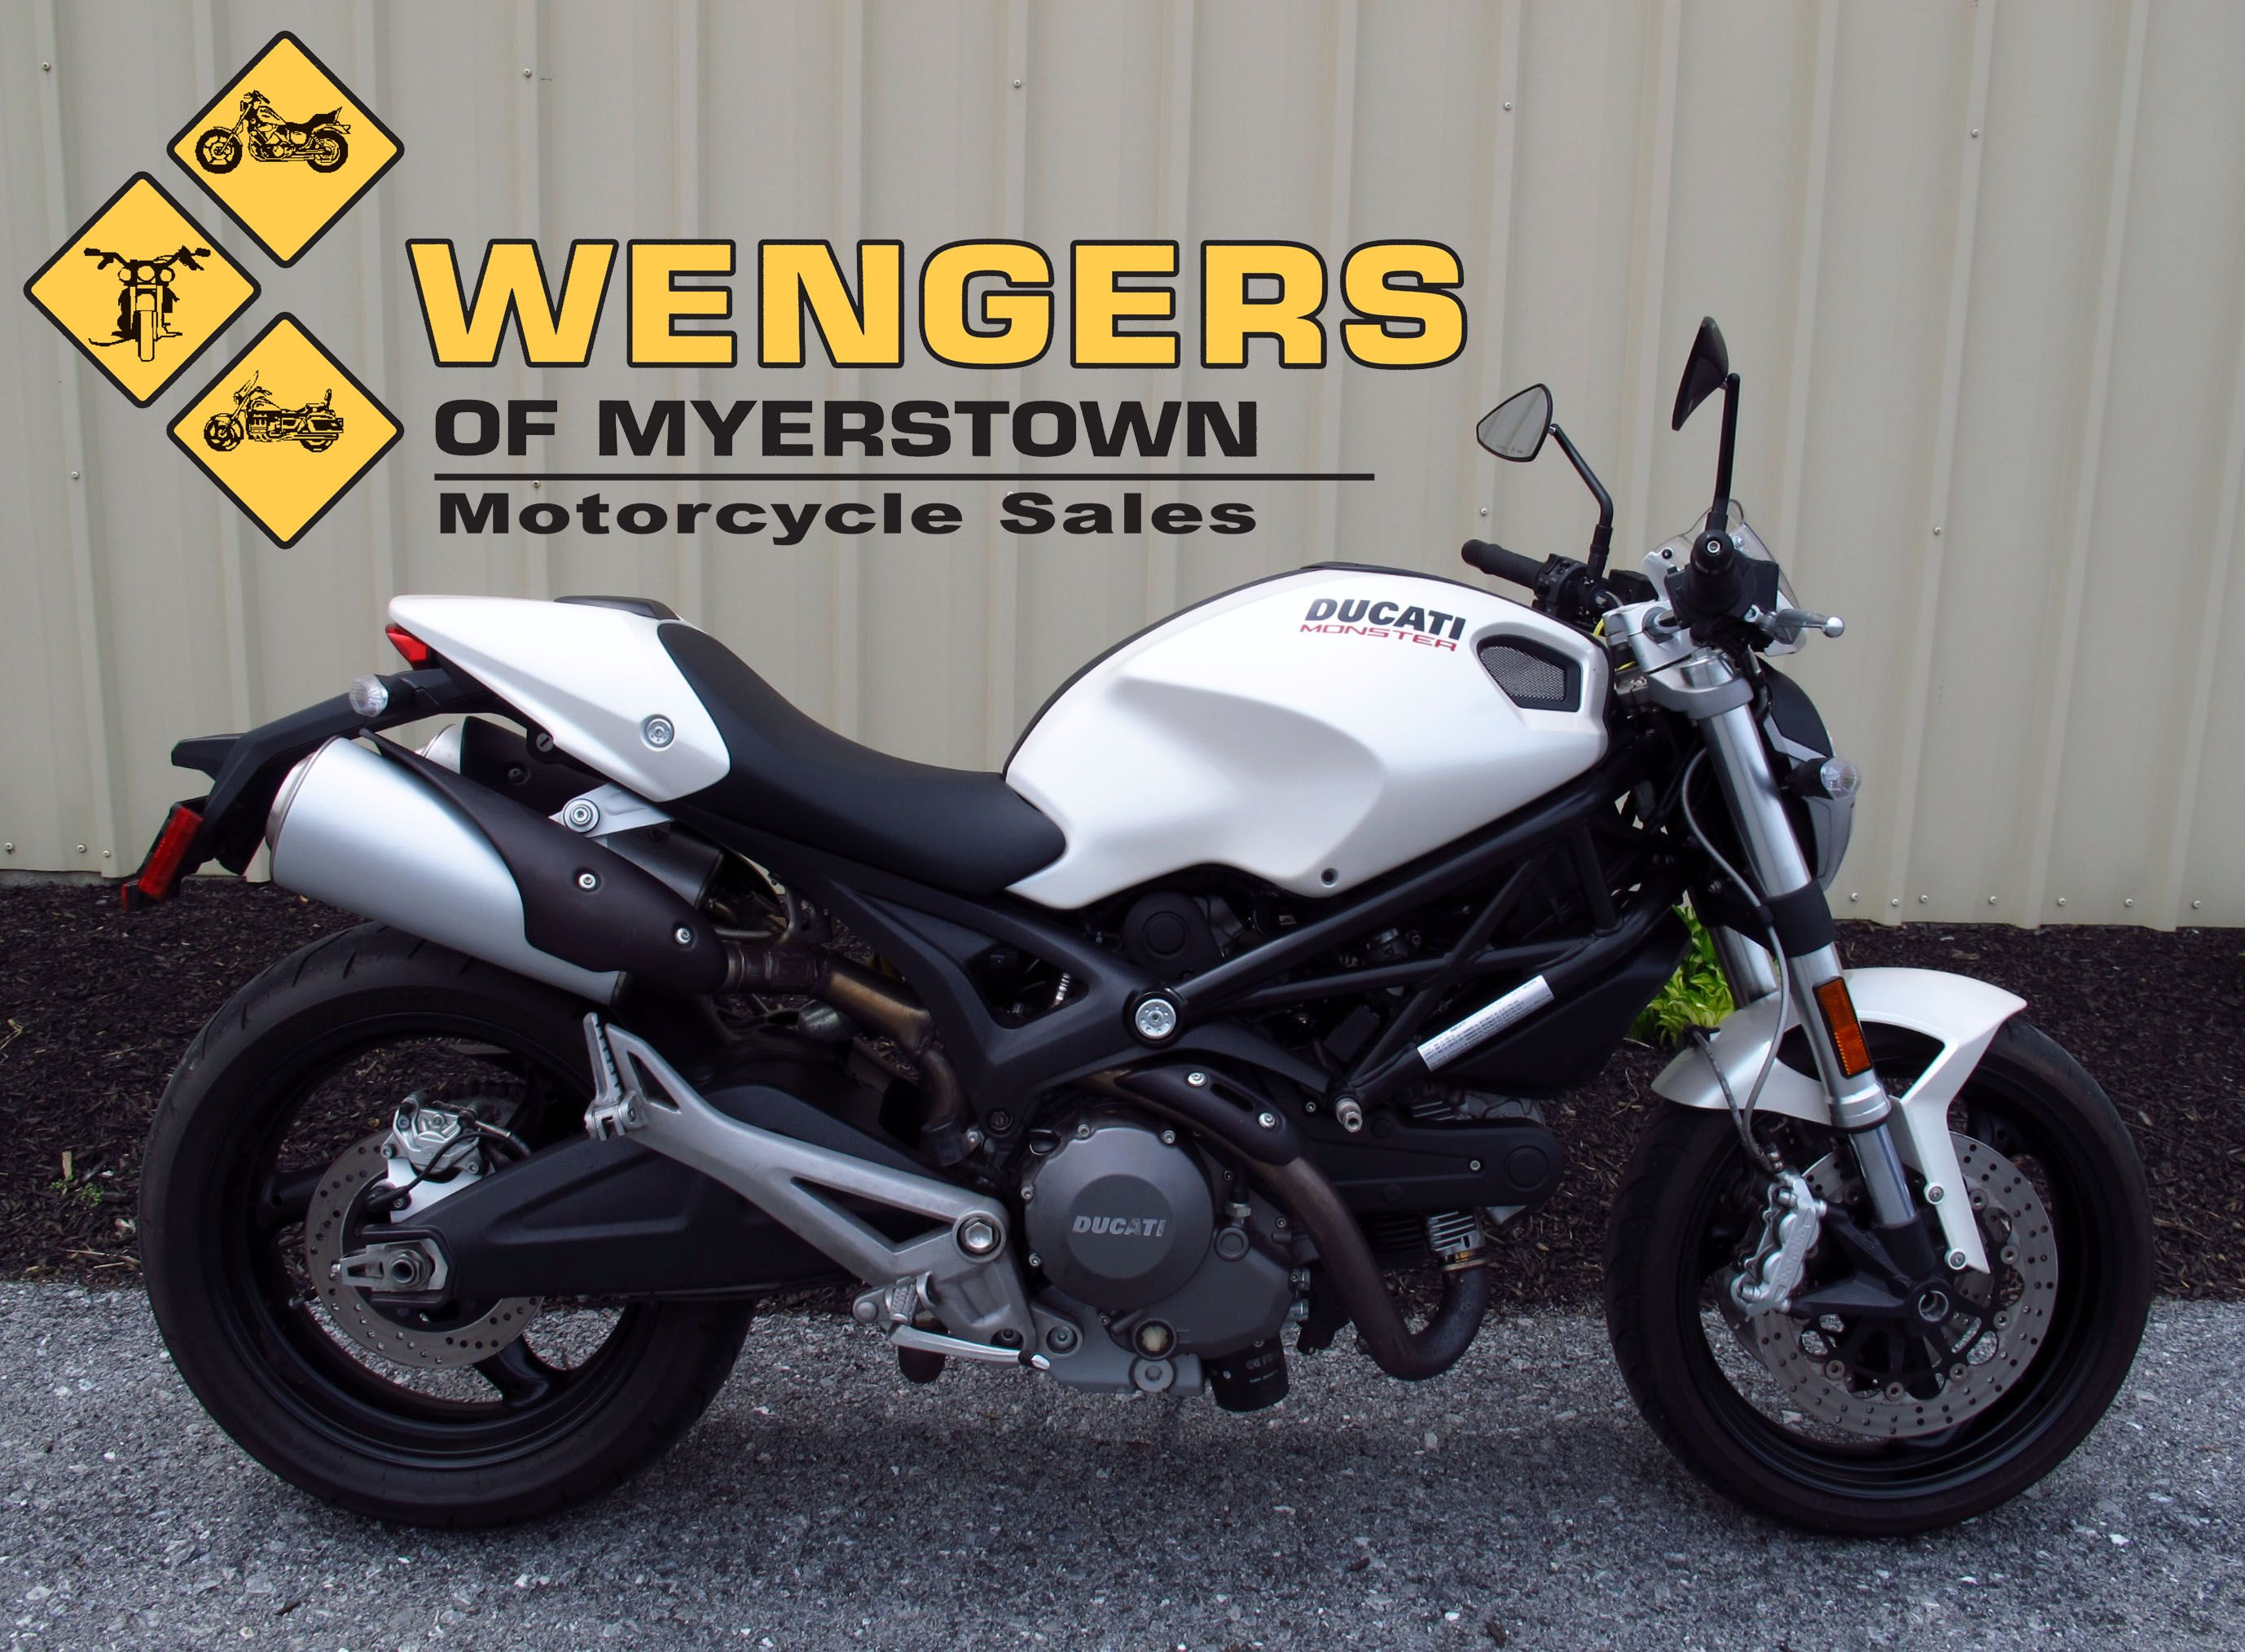 Wengers Of Myerstown >> Ducati Monster 696 Motorcycles for sale at Wengers of ...